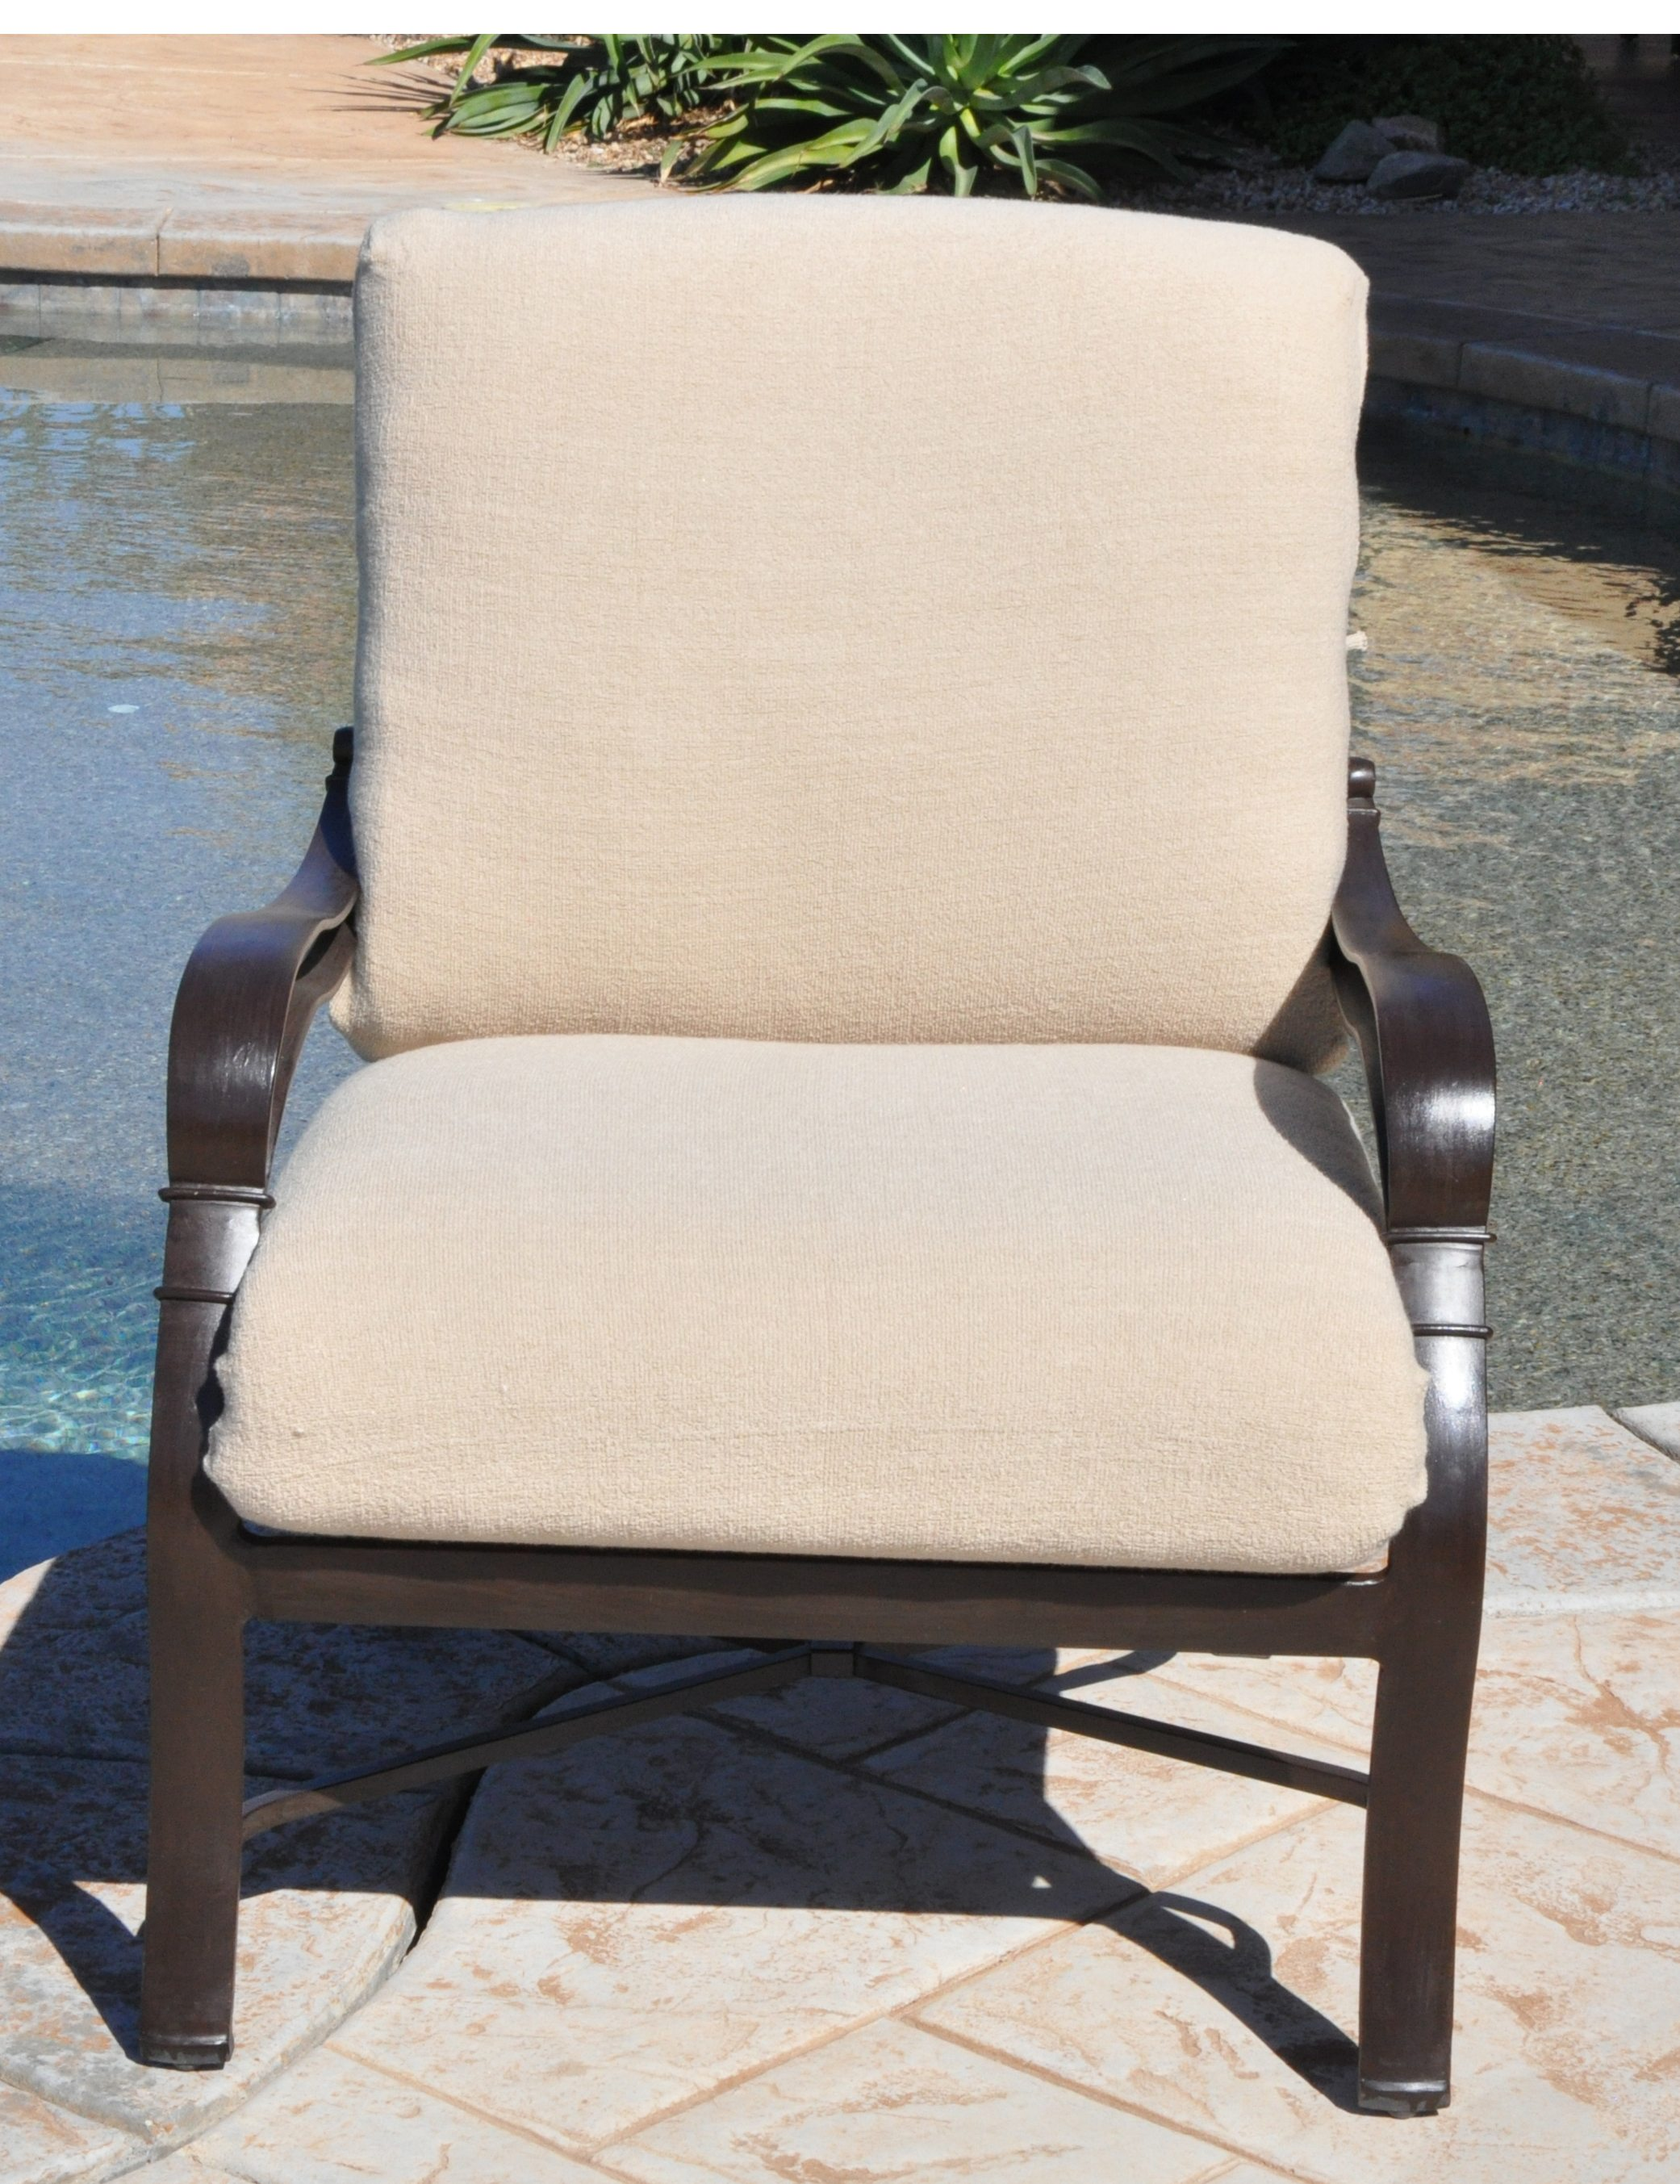 Outdoor Deep Seat Cushion Slipcovers (2 Piece) Cushychic